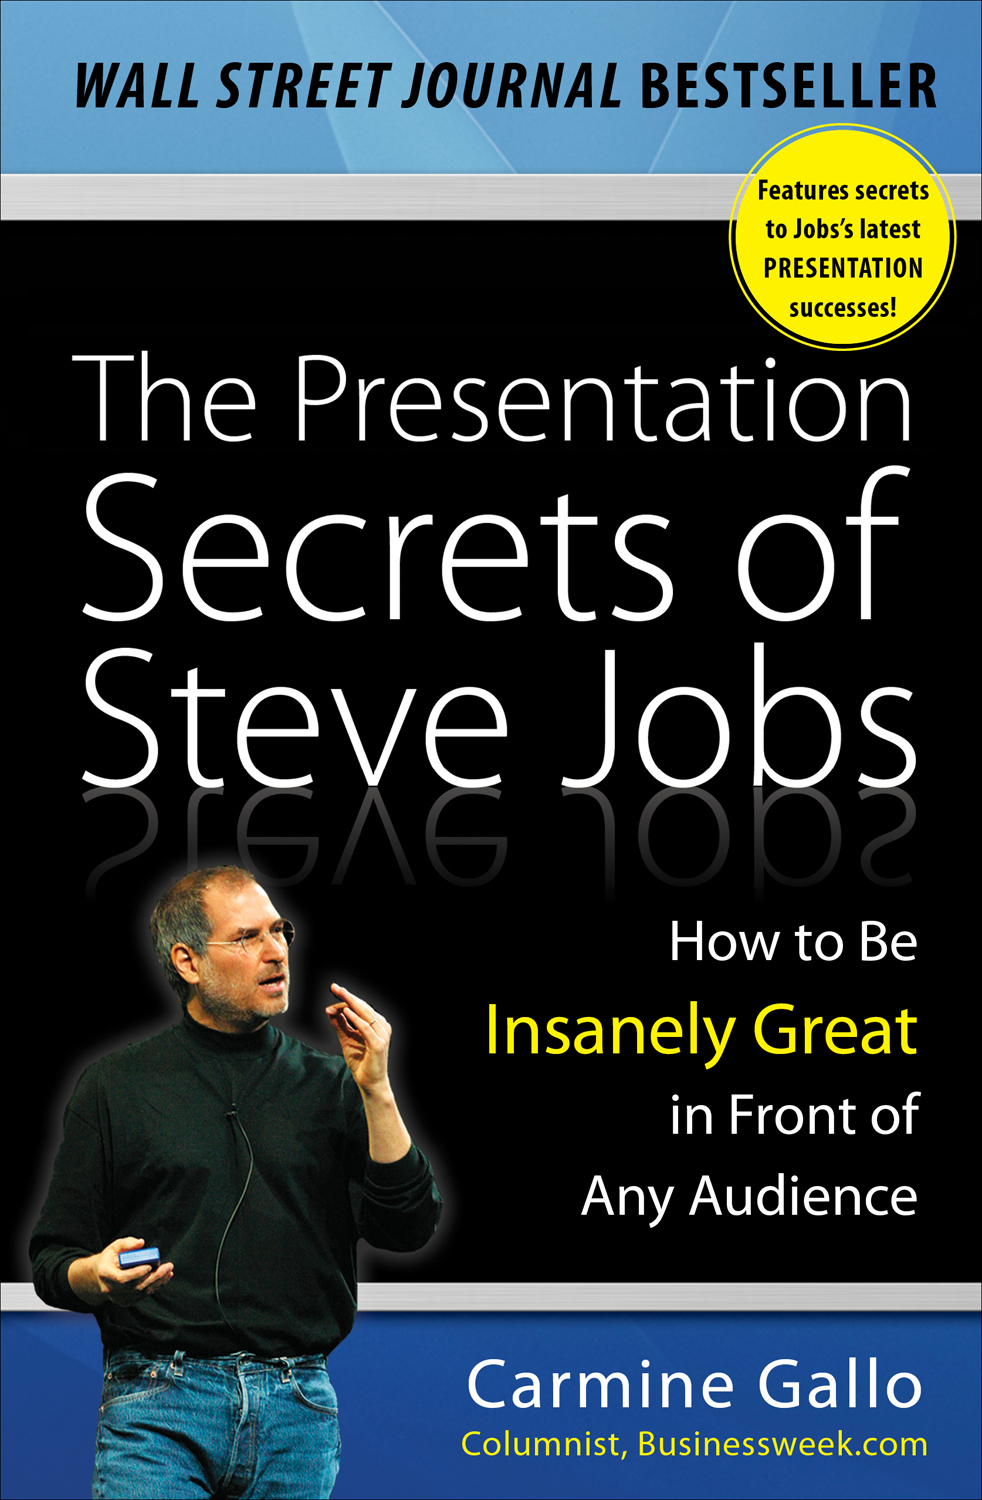 Download Ebook The Presentation Secrets of Steve Jobs: How to Be Insanely Great in Front of Any Audience by Carmine Gallo Pdf